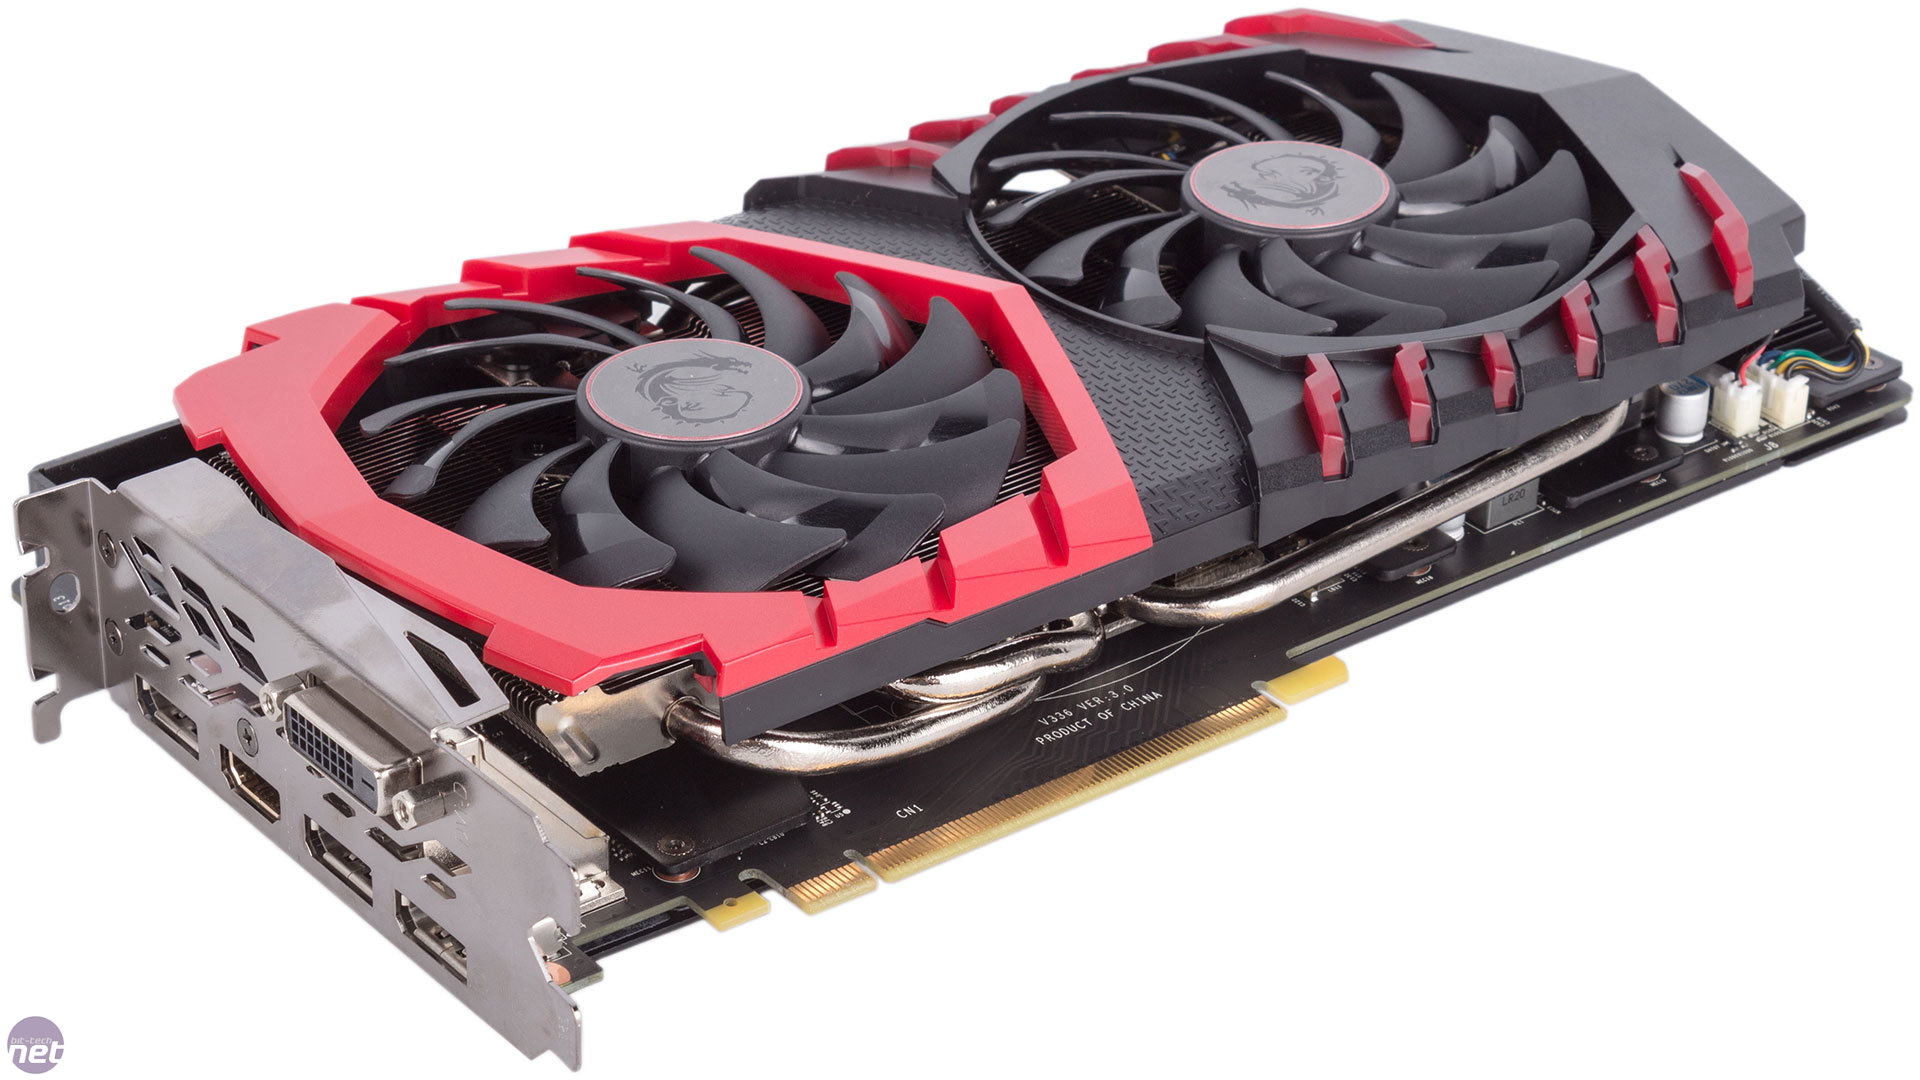 msi geforce gtx 1080 gaming x 8g описание